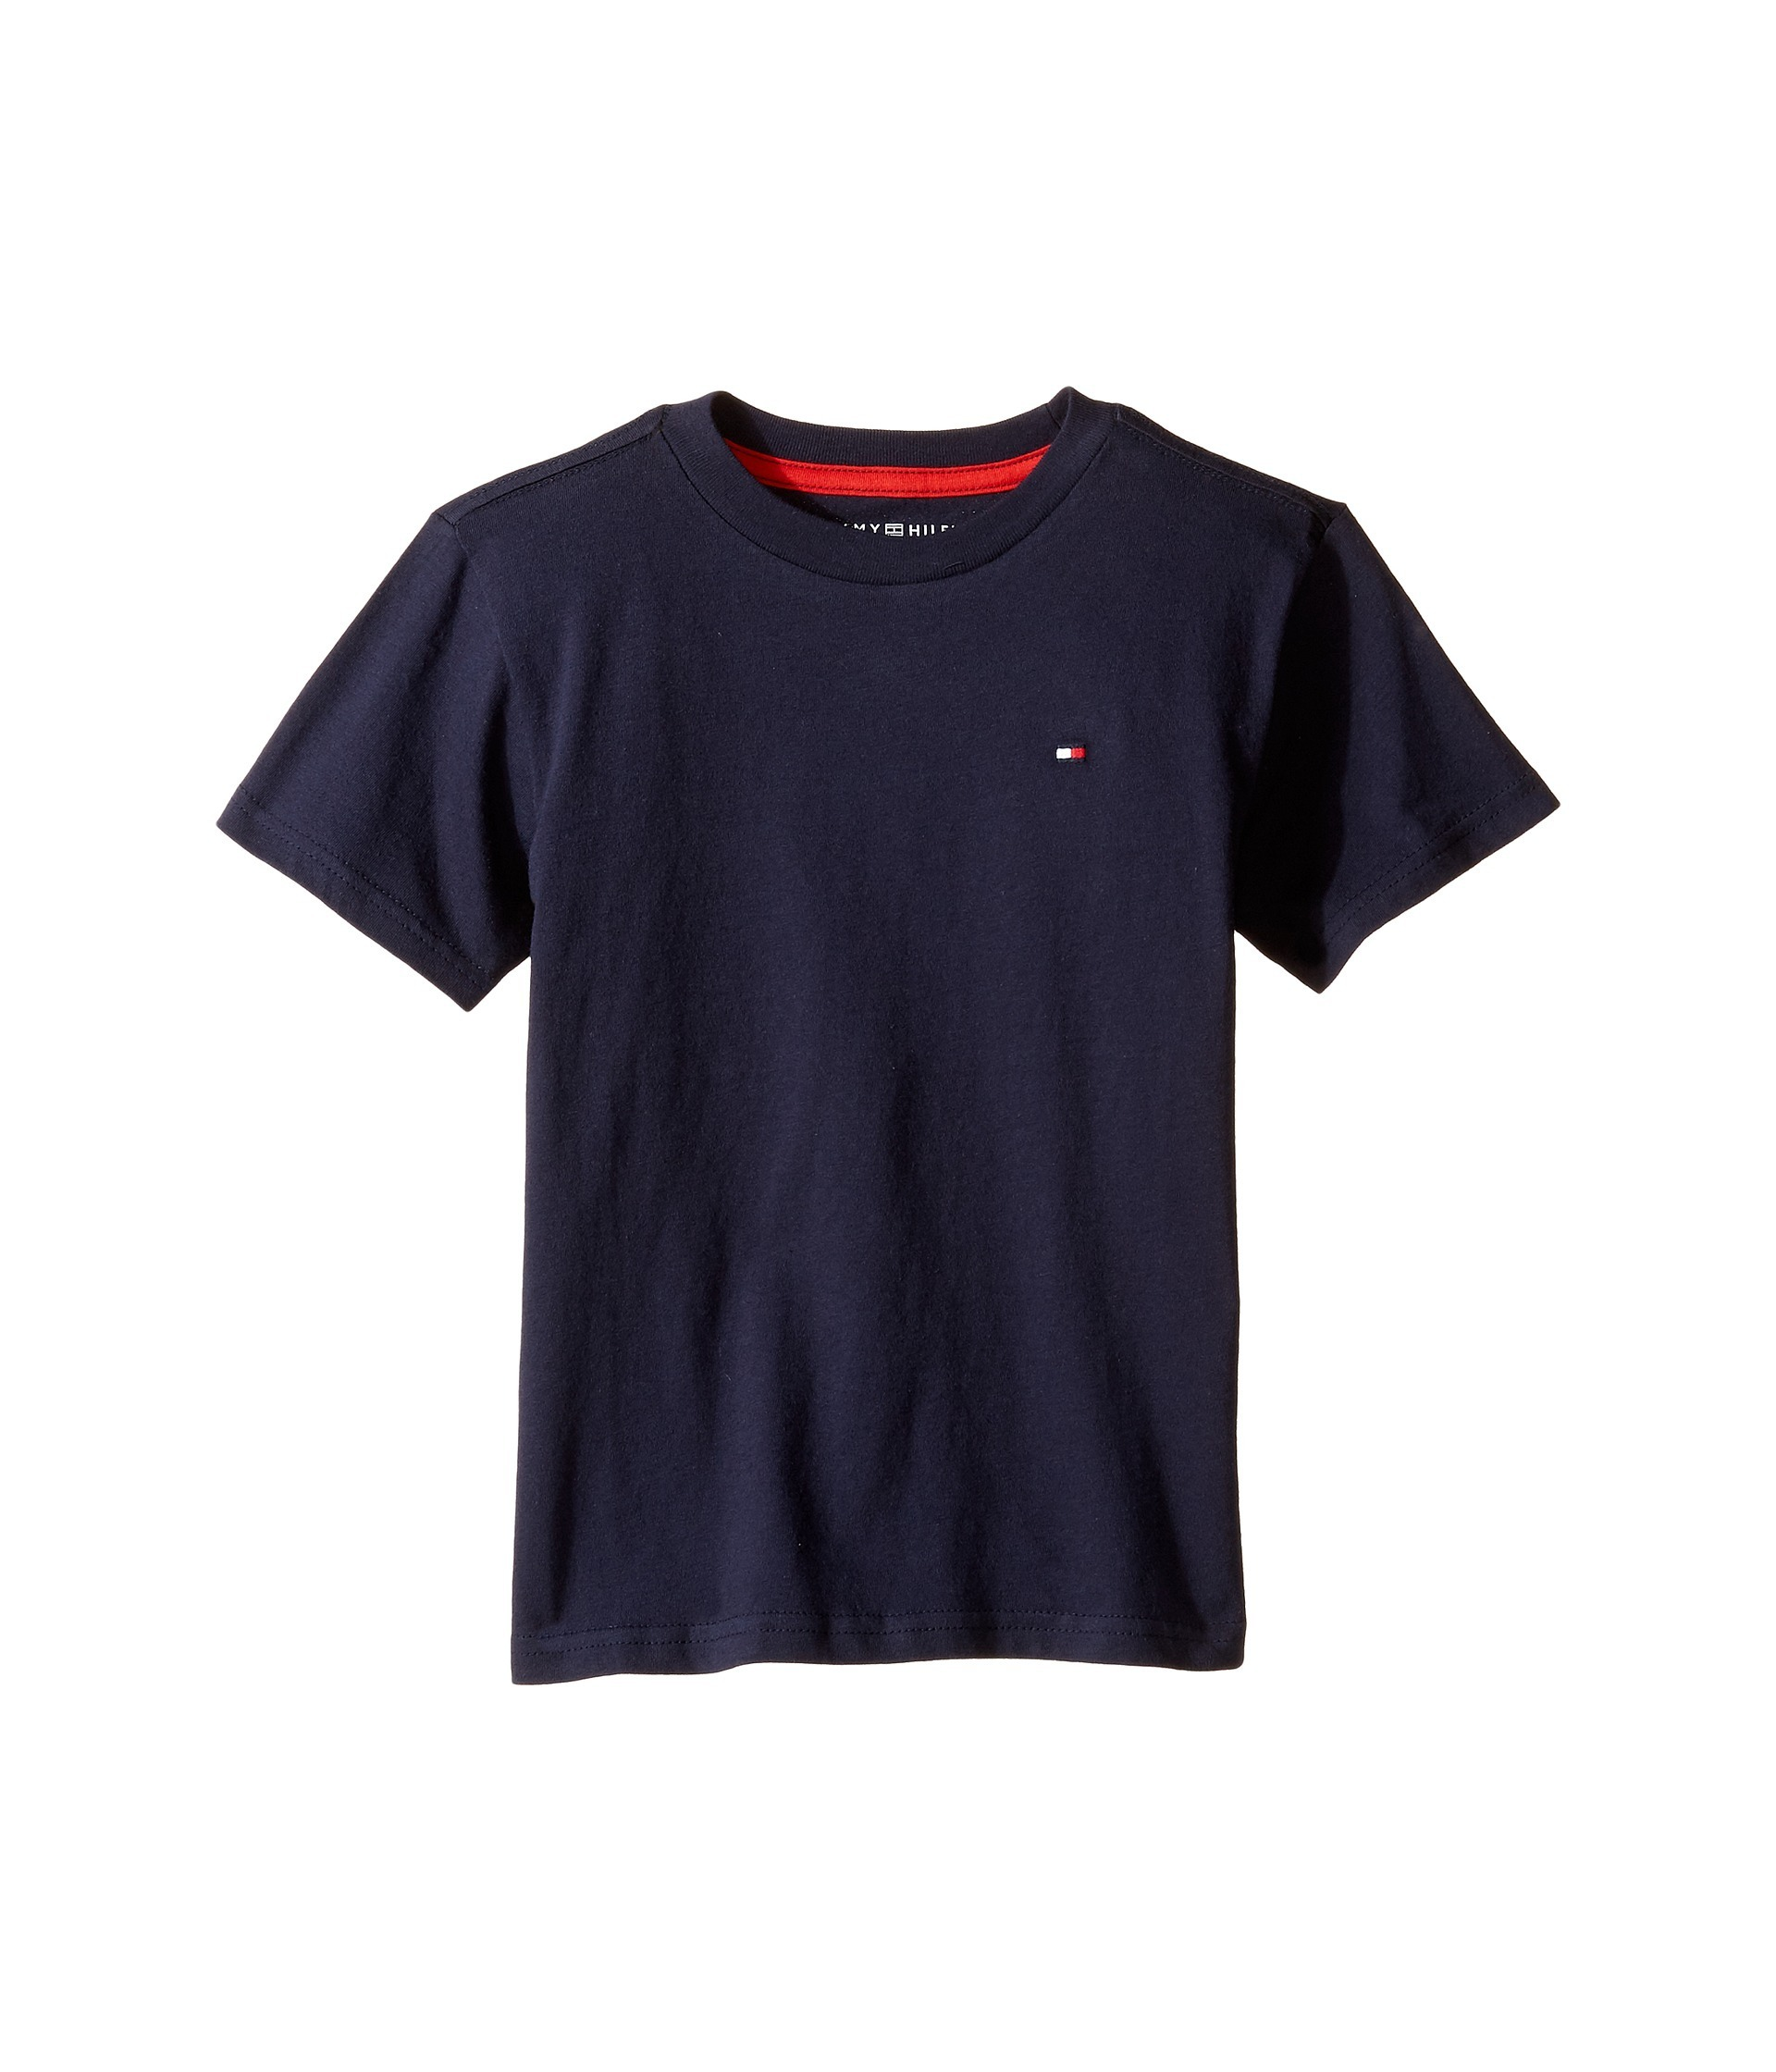 大人気★Tommy Hilfiger Kids Tony Tee (Toddler/L 送料・関税込